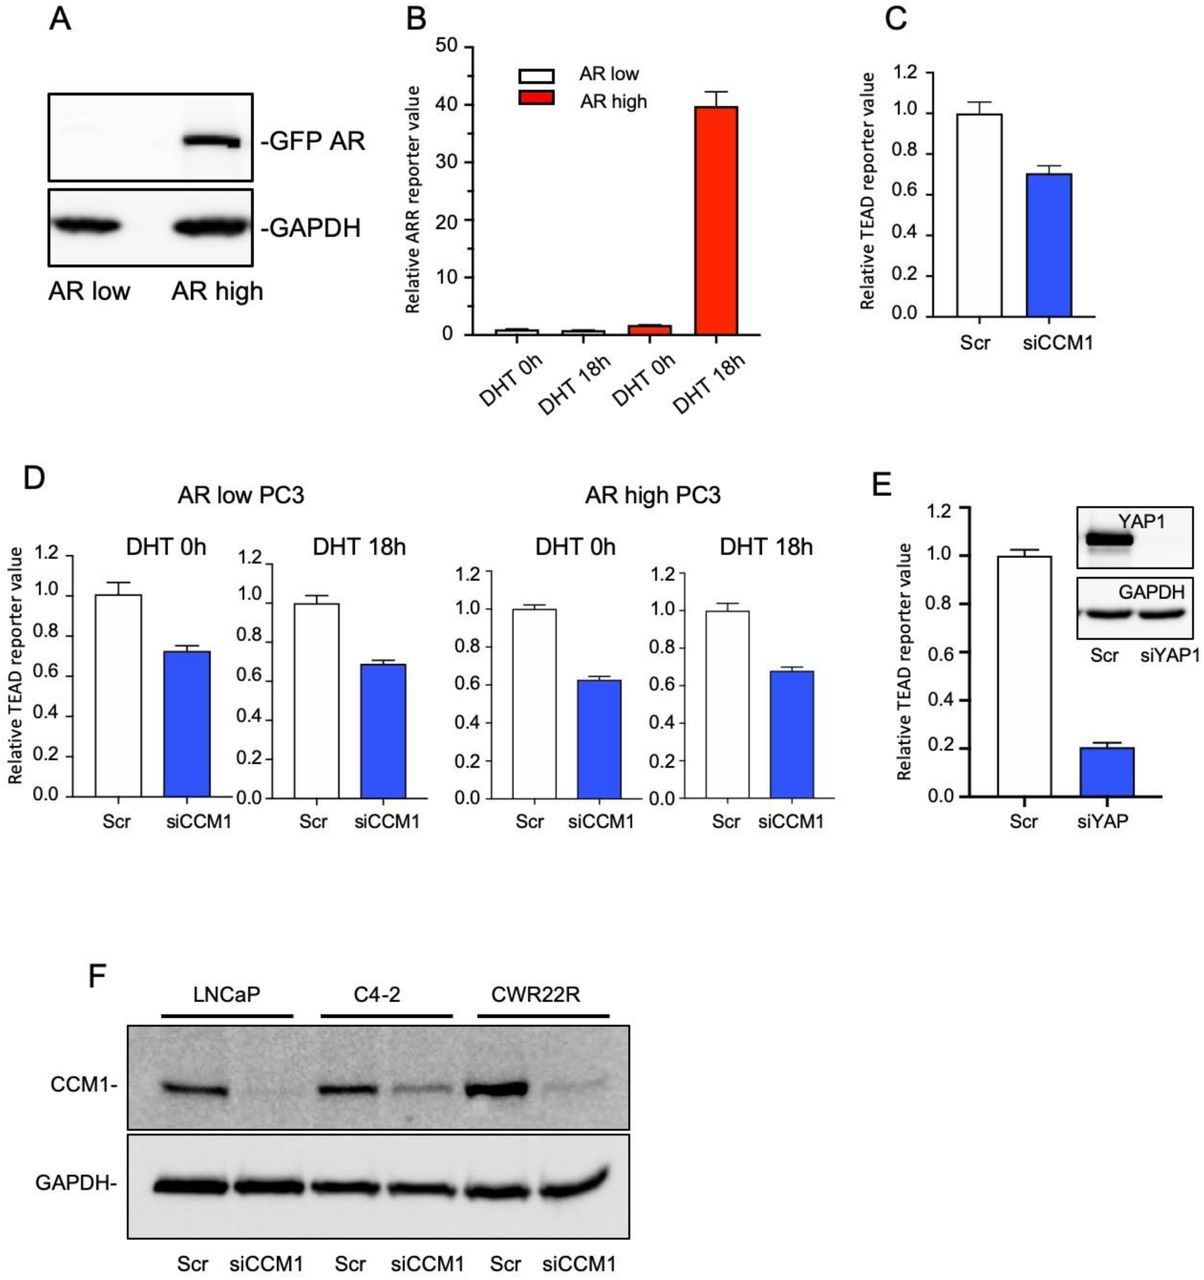 CCM1-mediated regulation of Yes-associated protein (YAP)/transcriptional co-activator with PDZ-binding motif (TAZ) signaling. (A) An androgen receptor (AR) overexpression plasmid was stably transfected in WT PC3 cells, and individual PC3 clones were sorted into AR high and AR low groups according to the expression level of ectopic AR. (B) PC3 AR high (red box) or low (white box) cells were grown in medium supplemented with 10% charcoal-stripped FBS and stimulated with 1 µM DHT for the indicated time points, and ARR reporter activities were measured using luciferase assays. (C) CCM1 was RNAi-silenced in DU145 cells grown in medium containing 10% FBS, and TEAD reporter activity was analyzed. (D) CCM1 was RNAi-silenced in AR low (left two panels) or AR high (right two panels) PC3 cells grown in 10% charcoal-stripped FBS supplemented medium with or without DHT stimulation as indicated, and TEAD reporter activity was analyzed. Reporter values are presented relative to that in each scramble control. (E) YAP1 was suppressed via RNAi in LNCaP cells, and TEAD reporter activity was analyzed. Suppression of YAP1 was confirmed via immunoblotting (Inset). (F) The representative degree of CCM1 suppression in LNCaP, C4-2, and CWR22r cells.